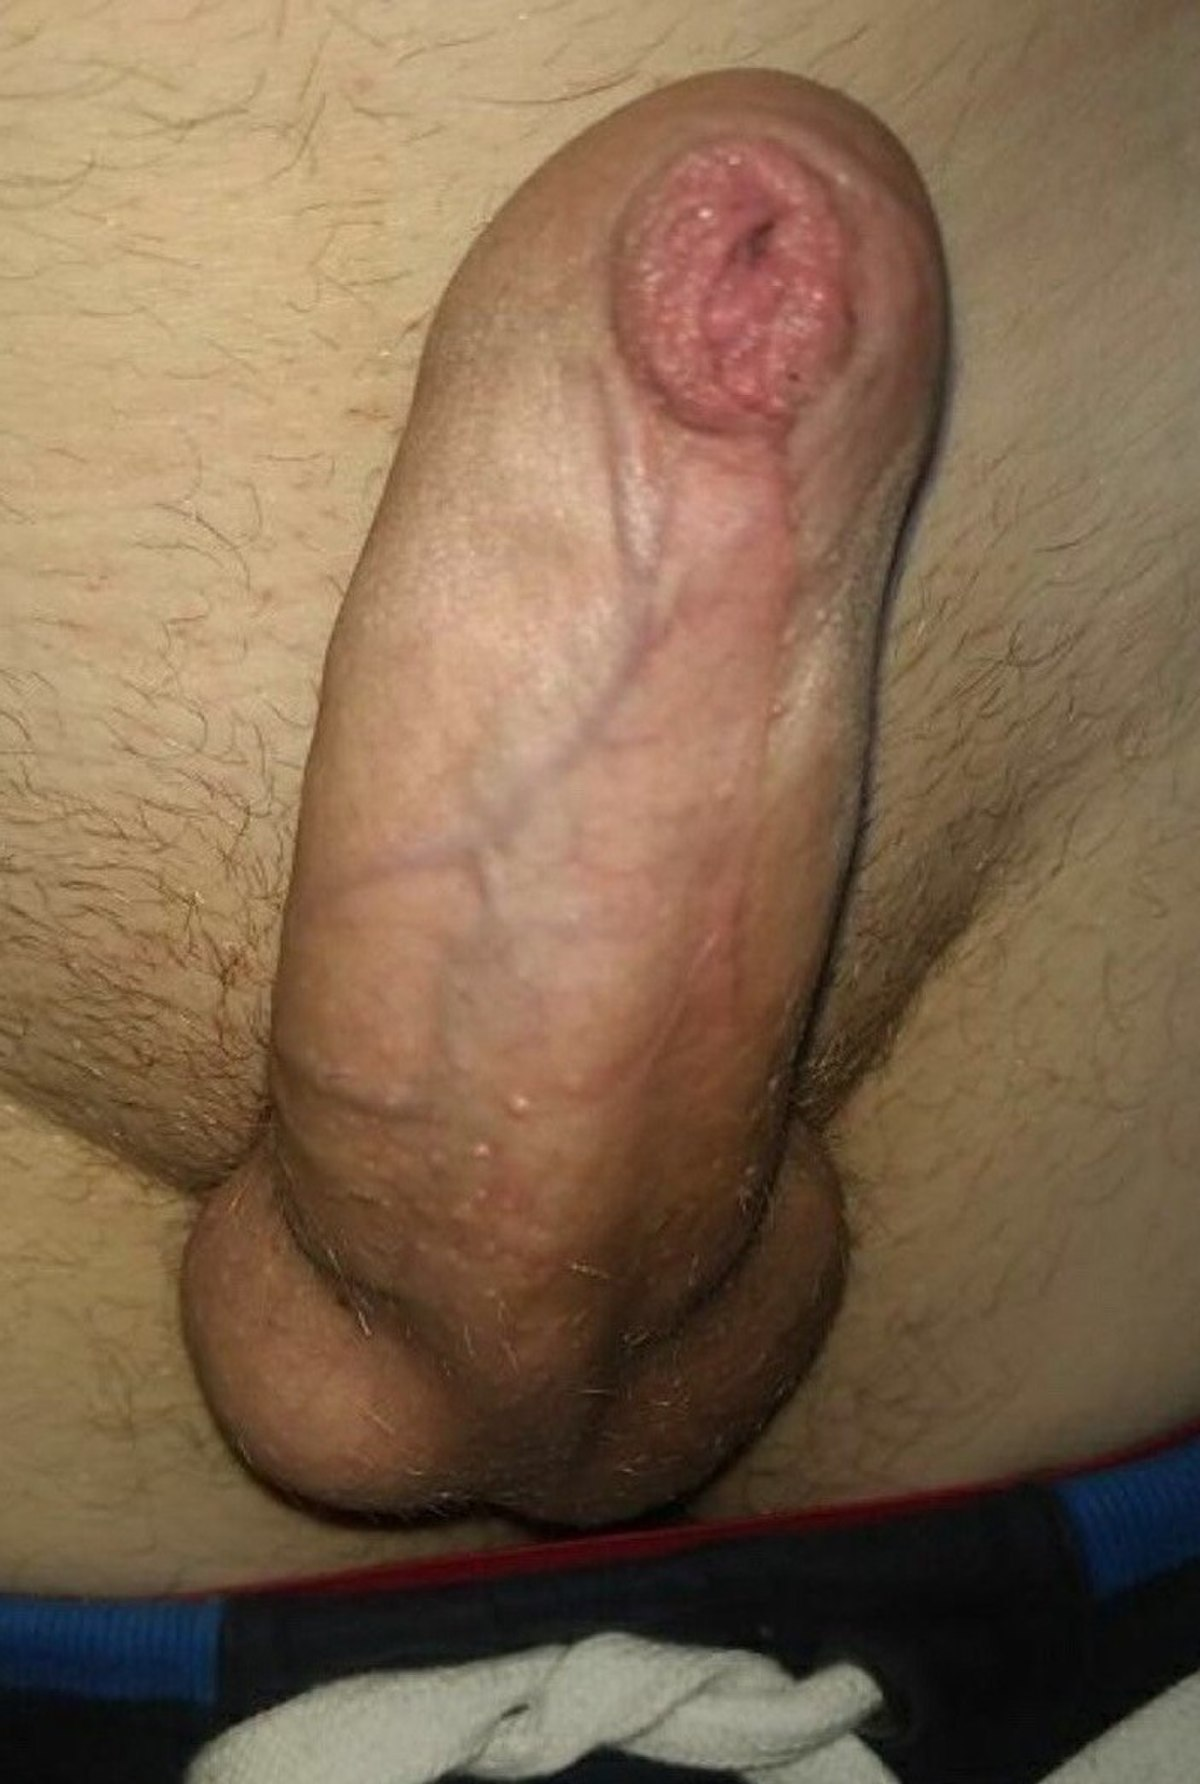 Tight foreskin when erect